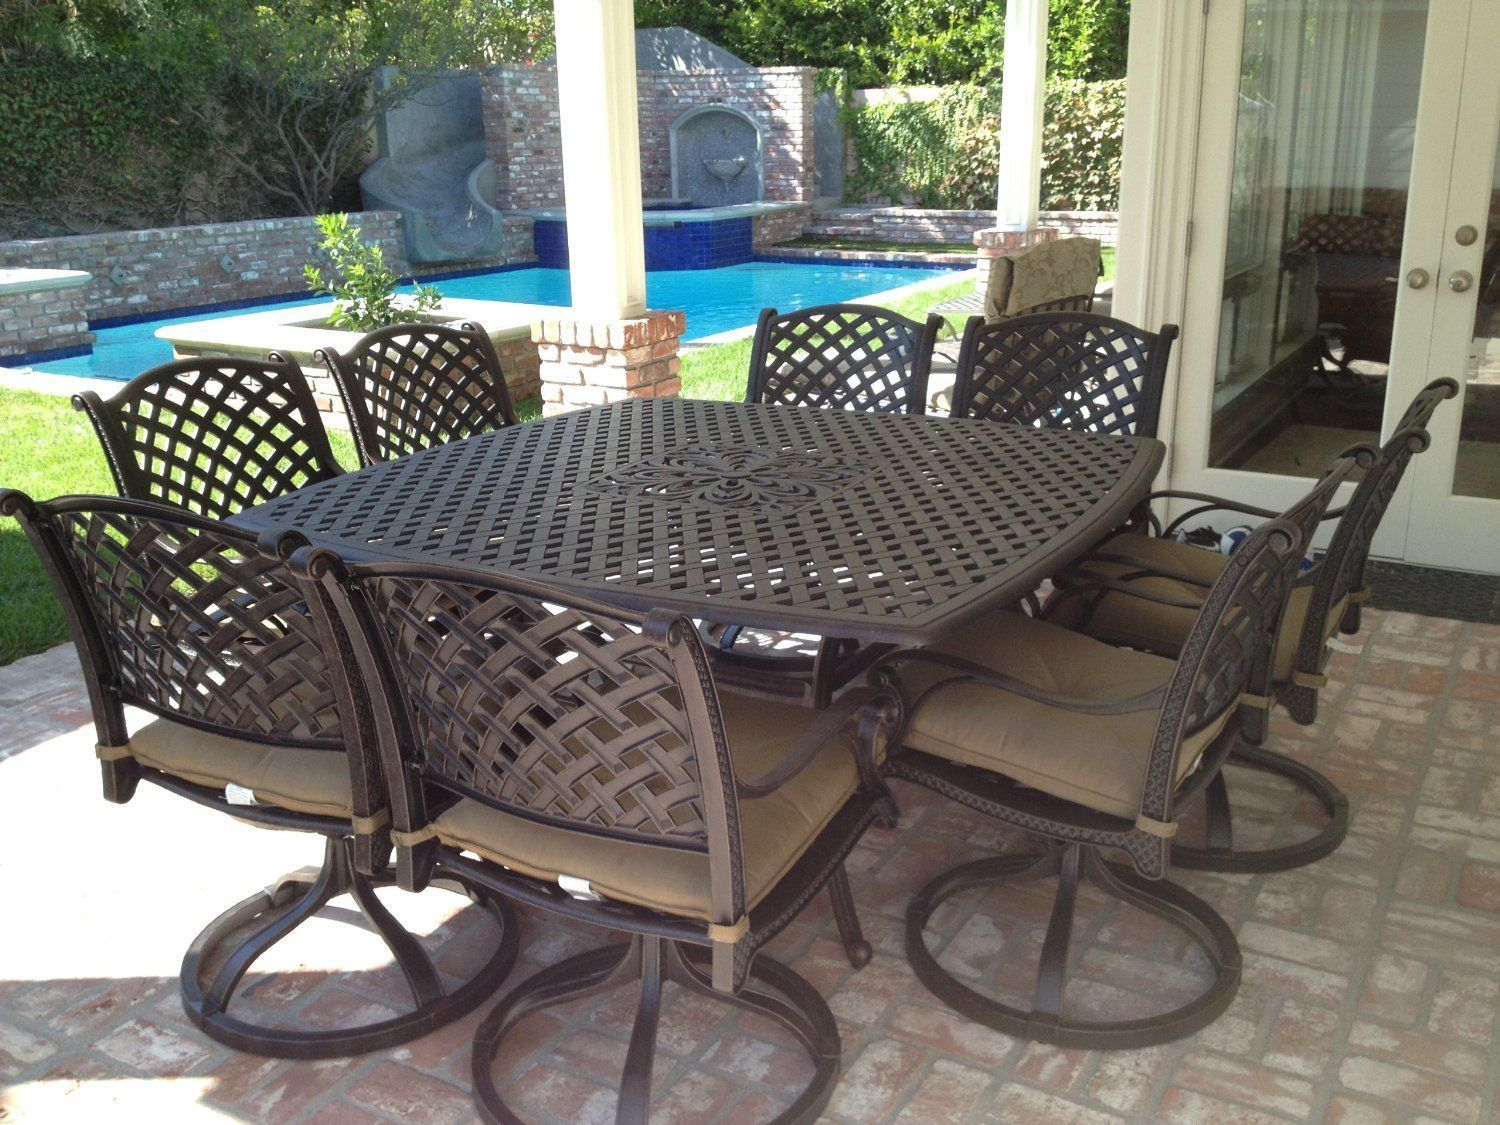 9 Piece for 8 Cast Aluminum Outdoor Patio Square Dining Set with Table & Chairs